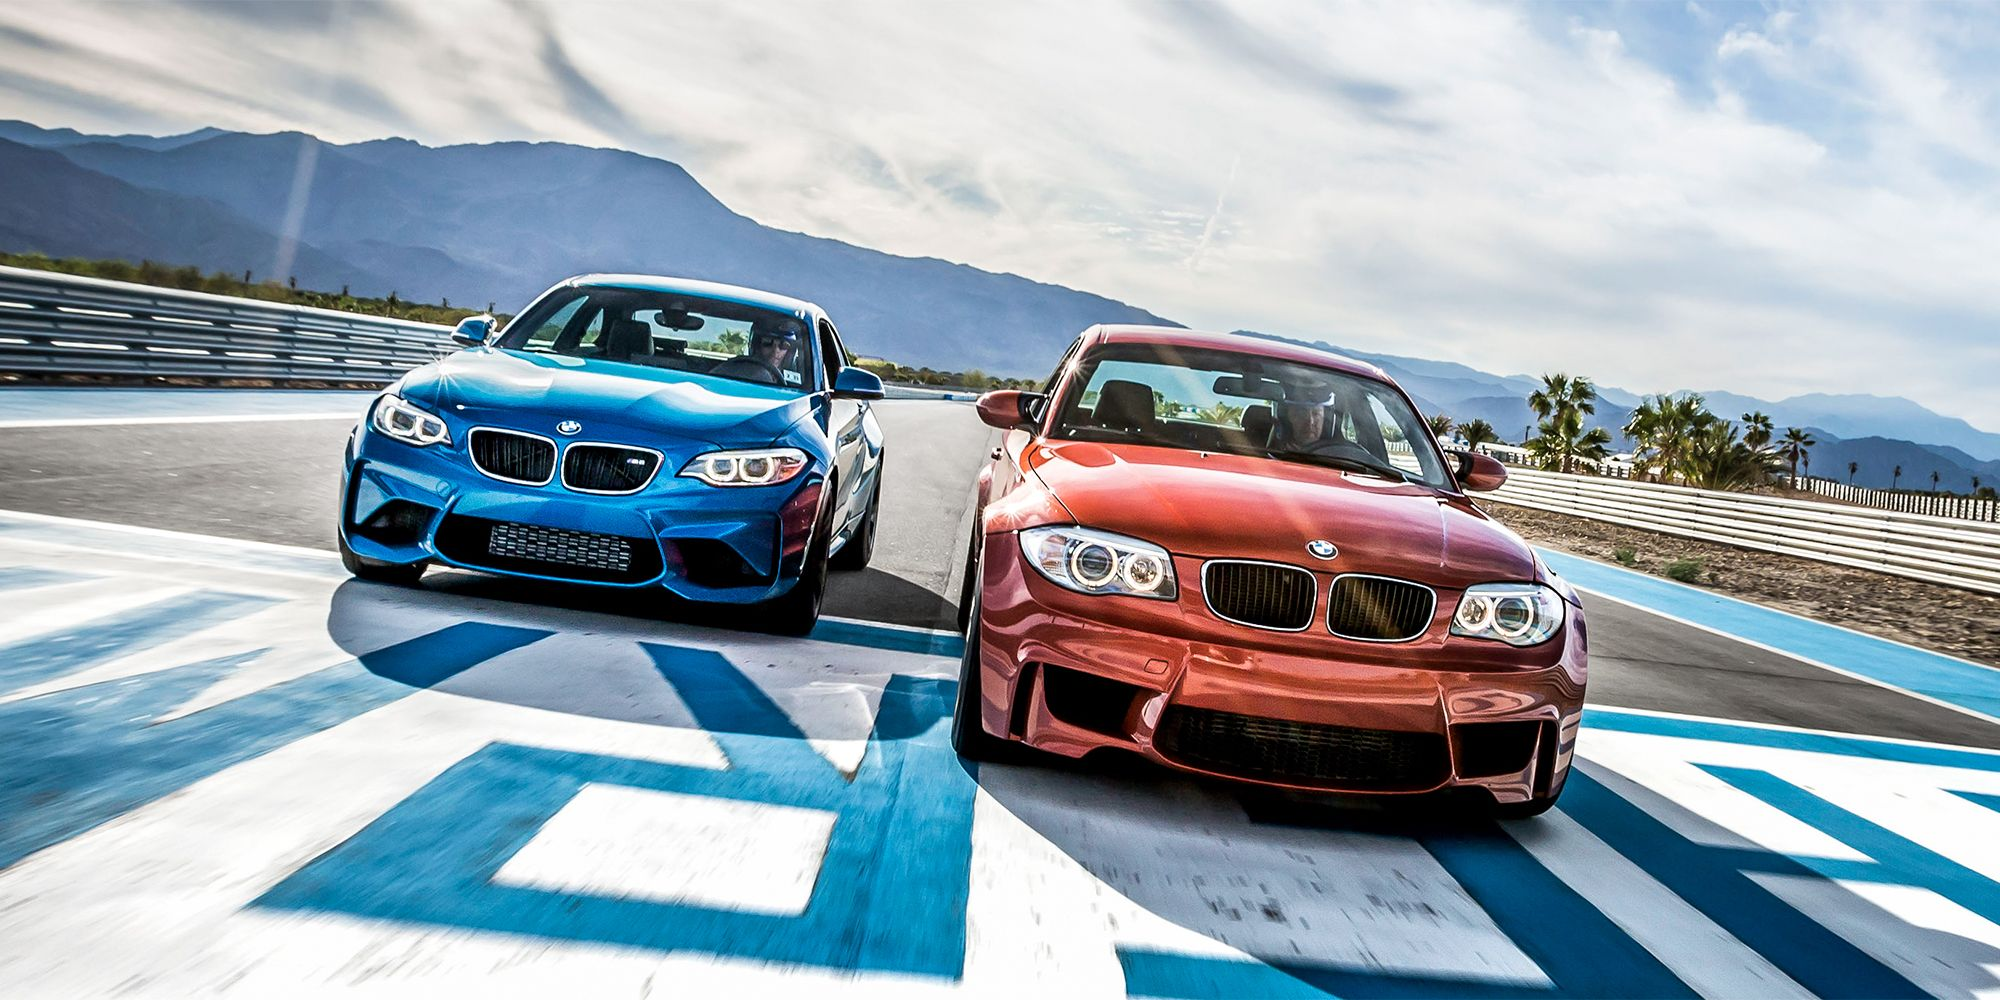 228i M235i Or M2 What S The Best Bmw Coupe You Can Buy Today